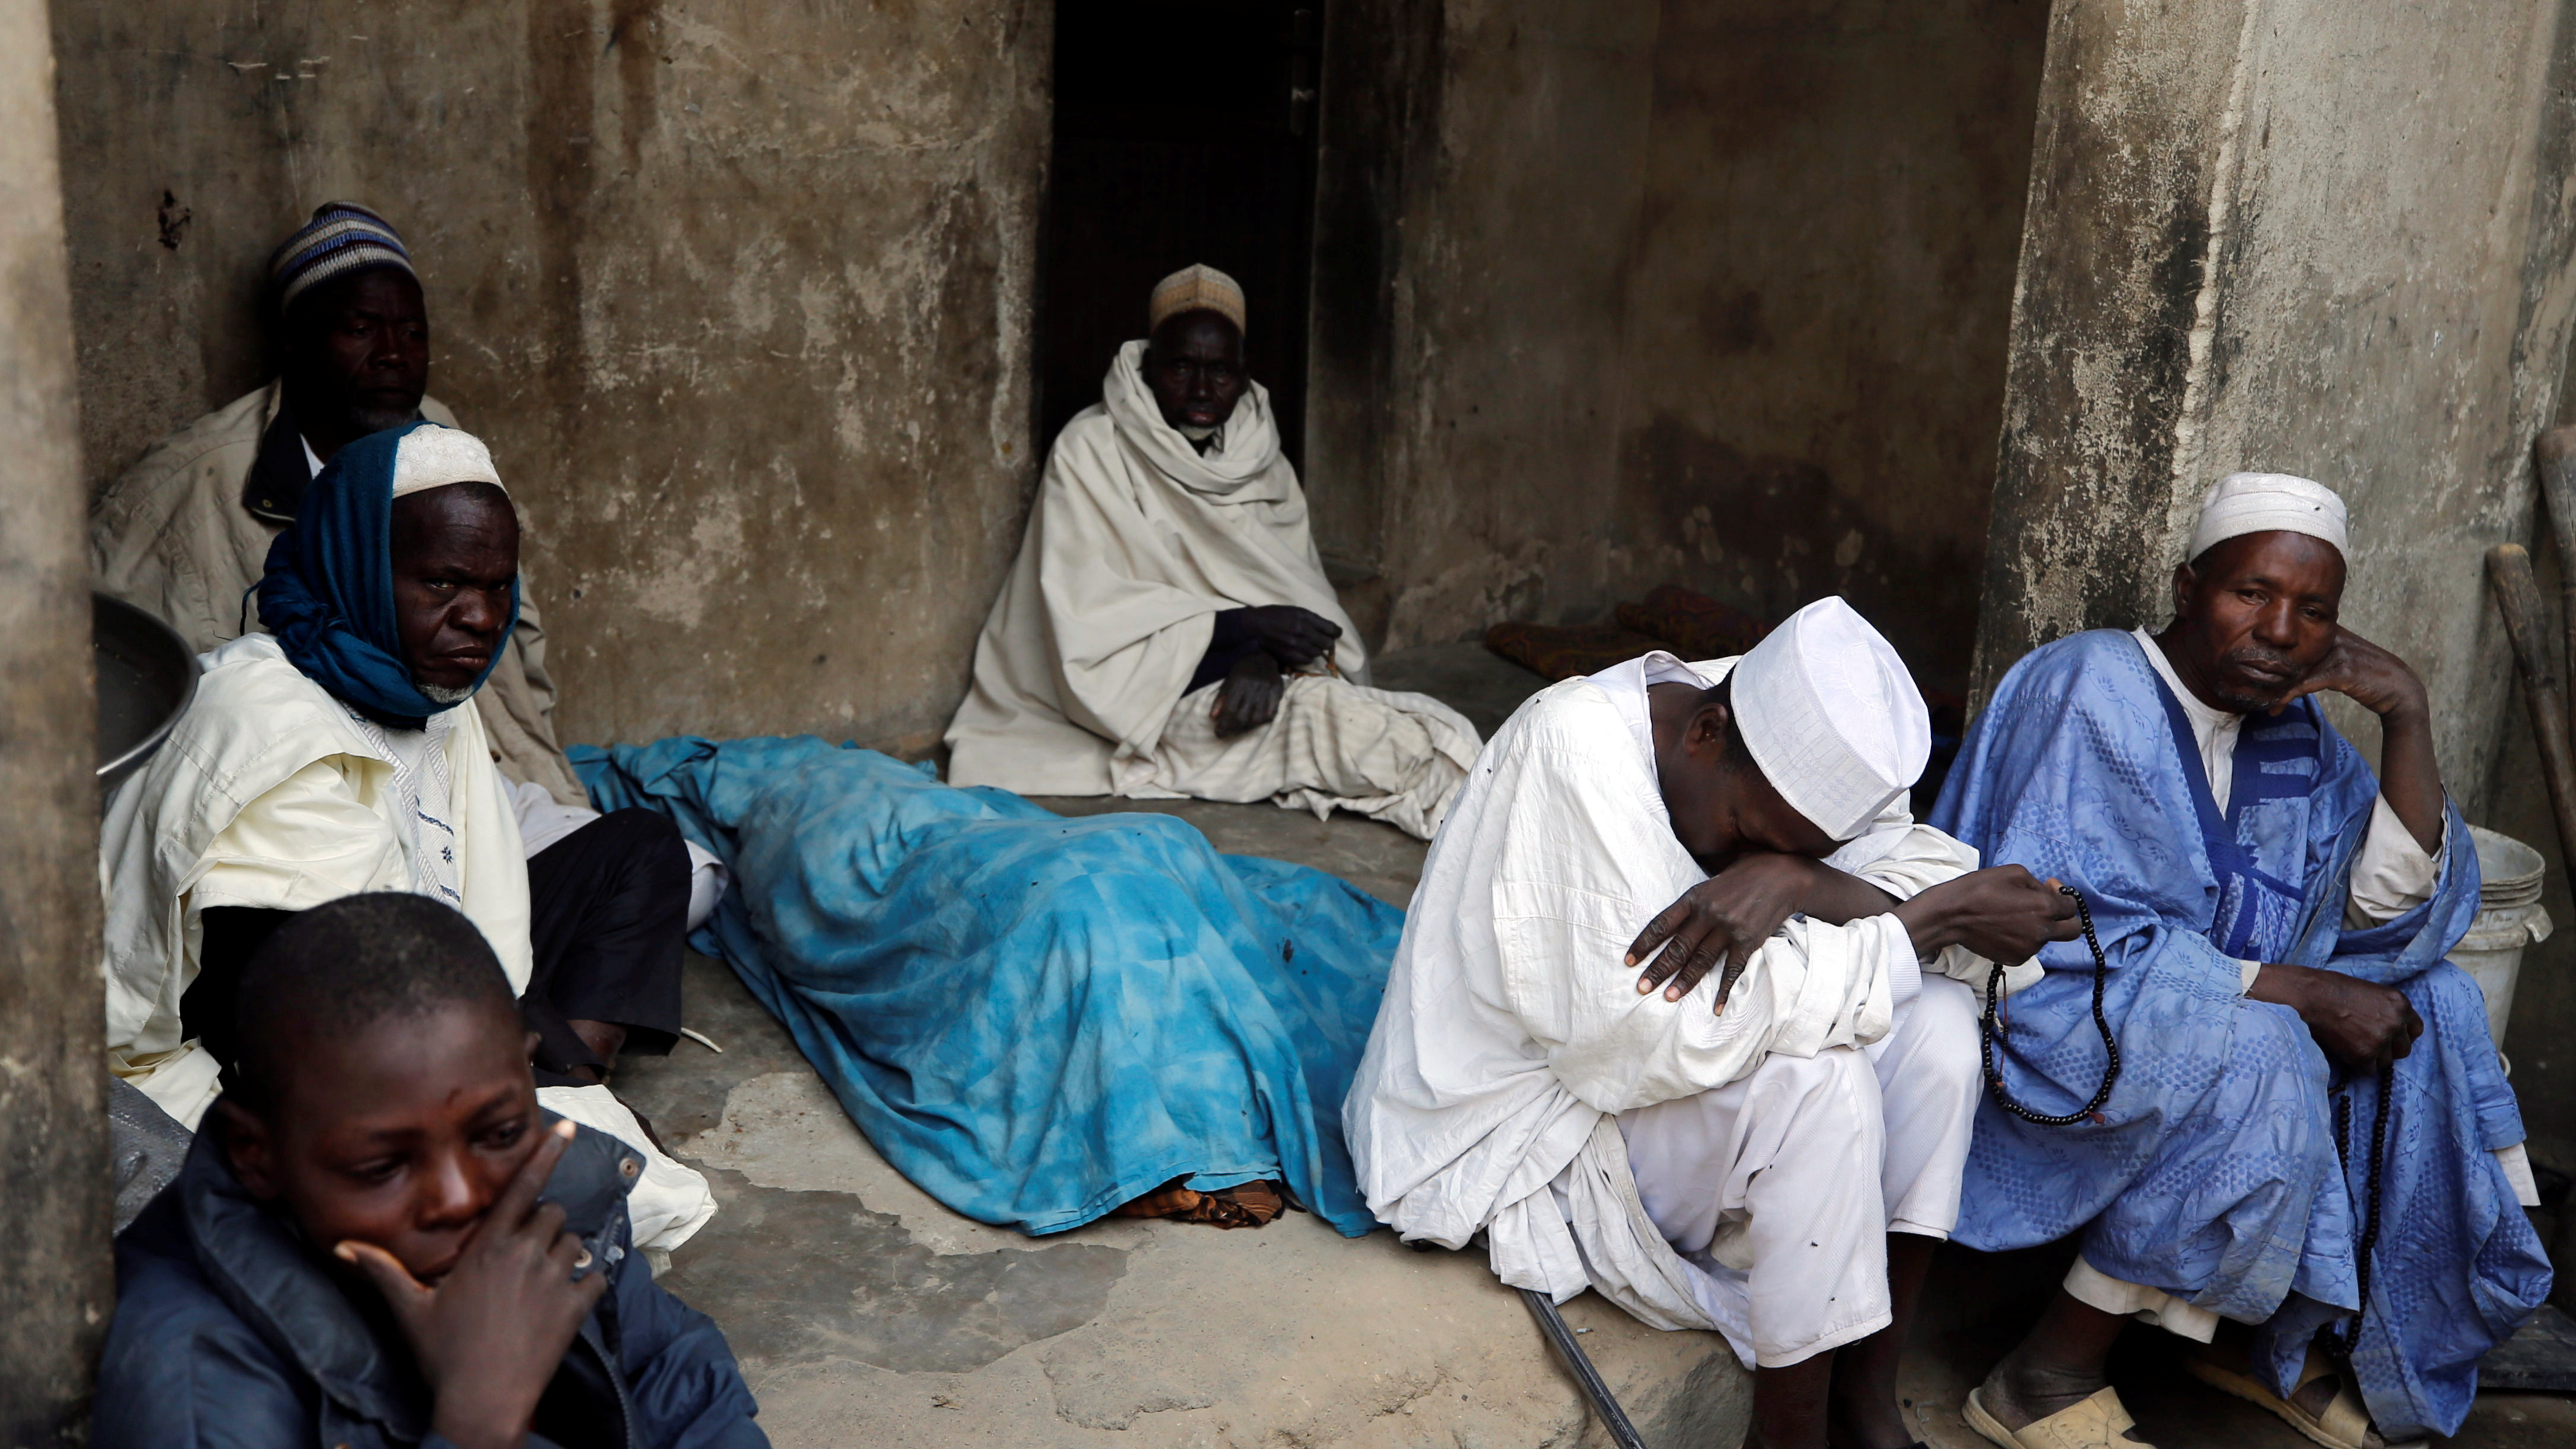 A family of men sit on a porch and cry with their heads down.